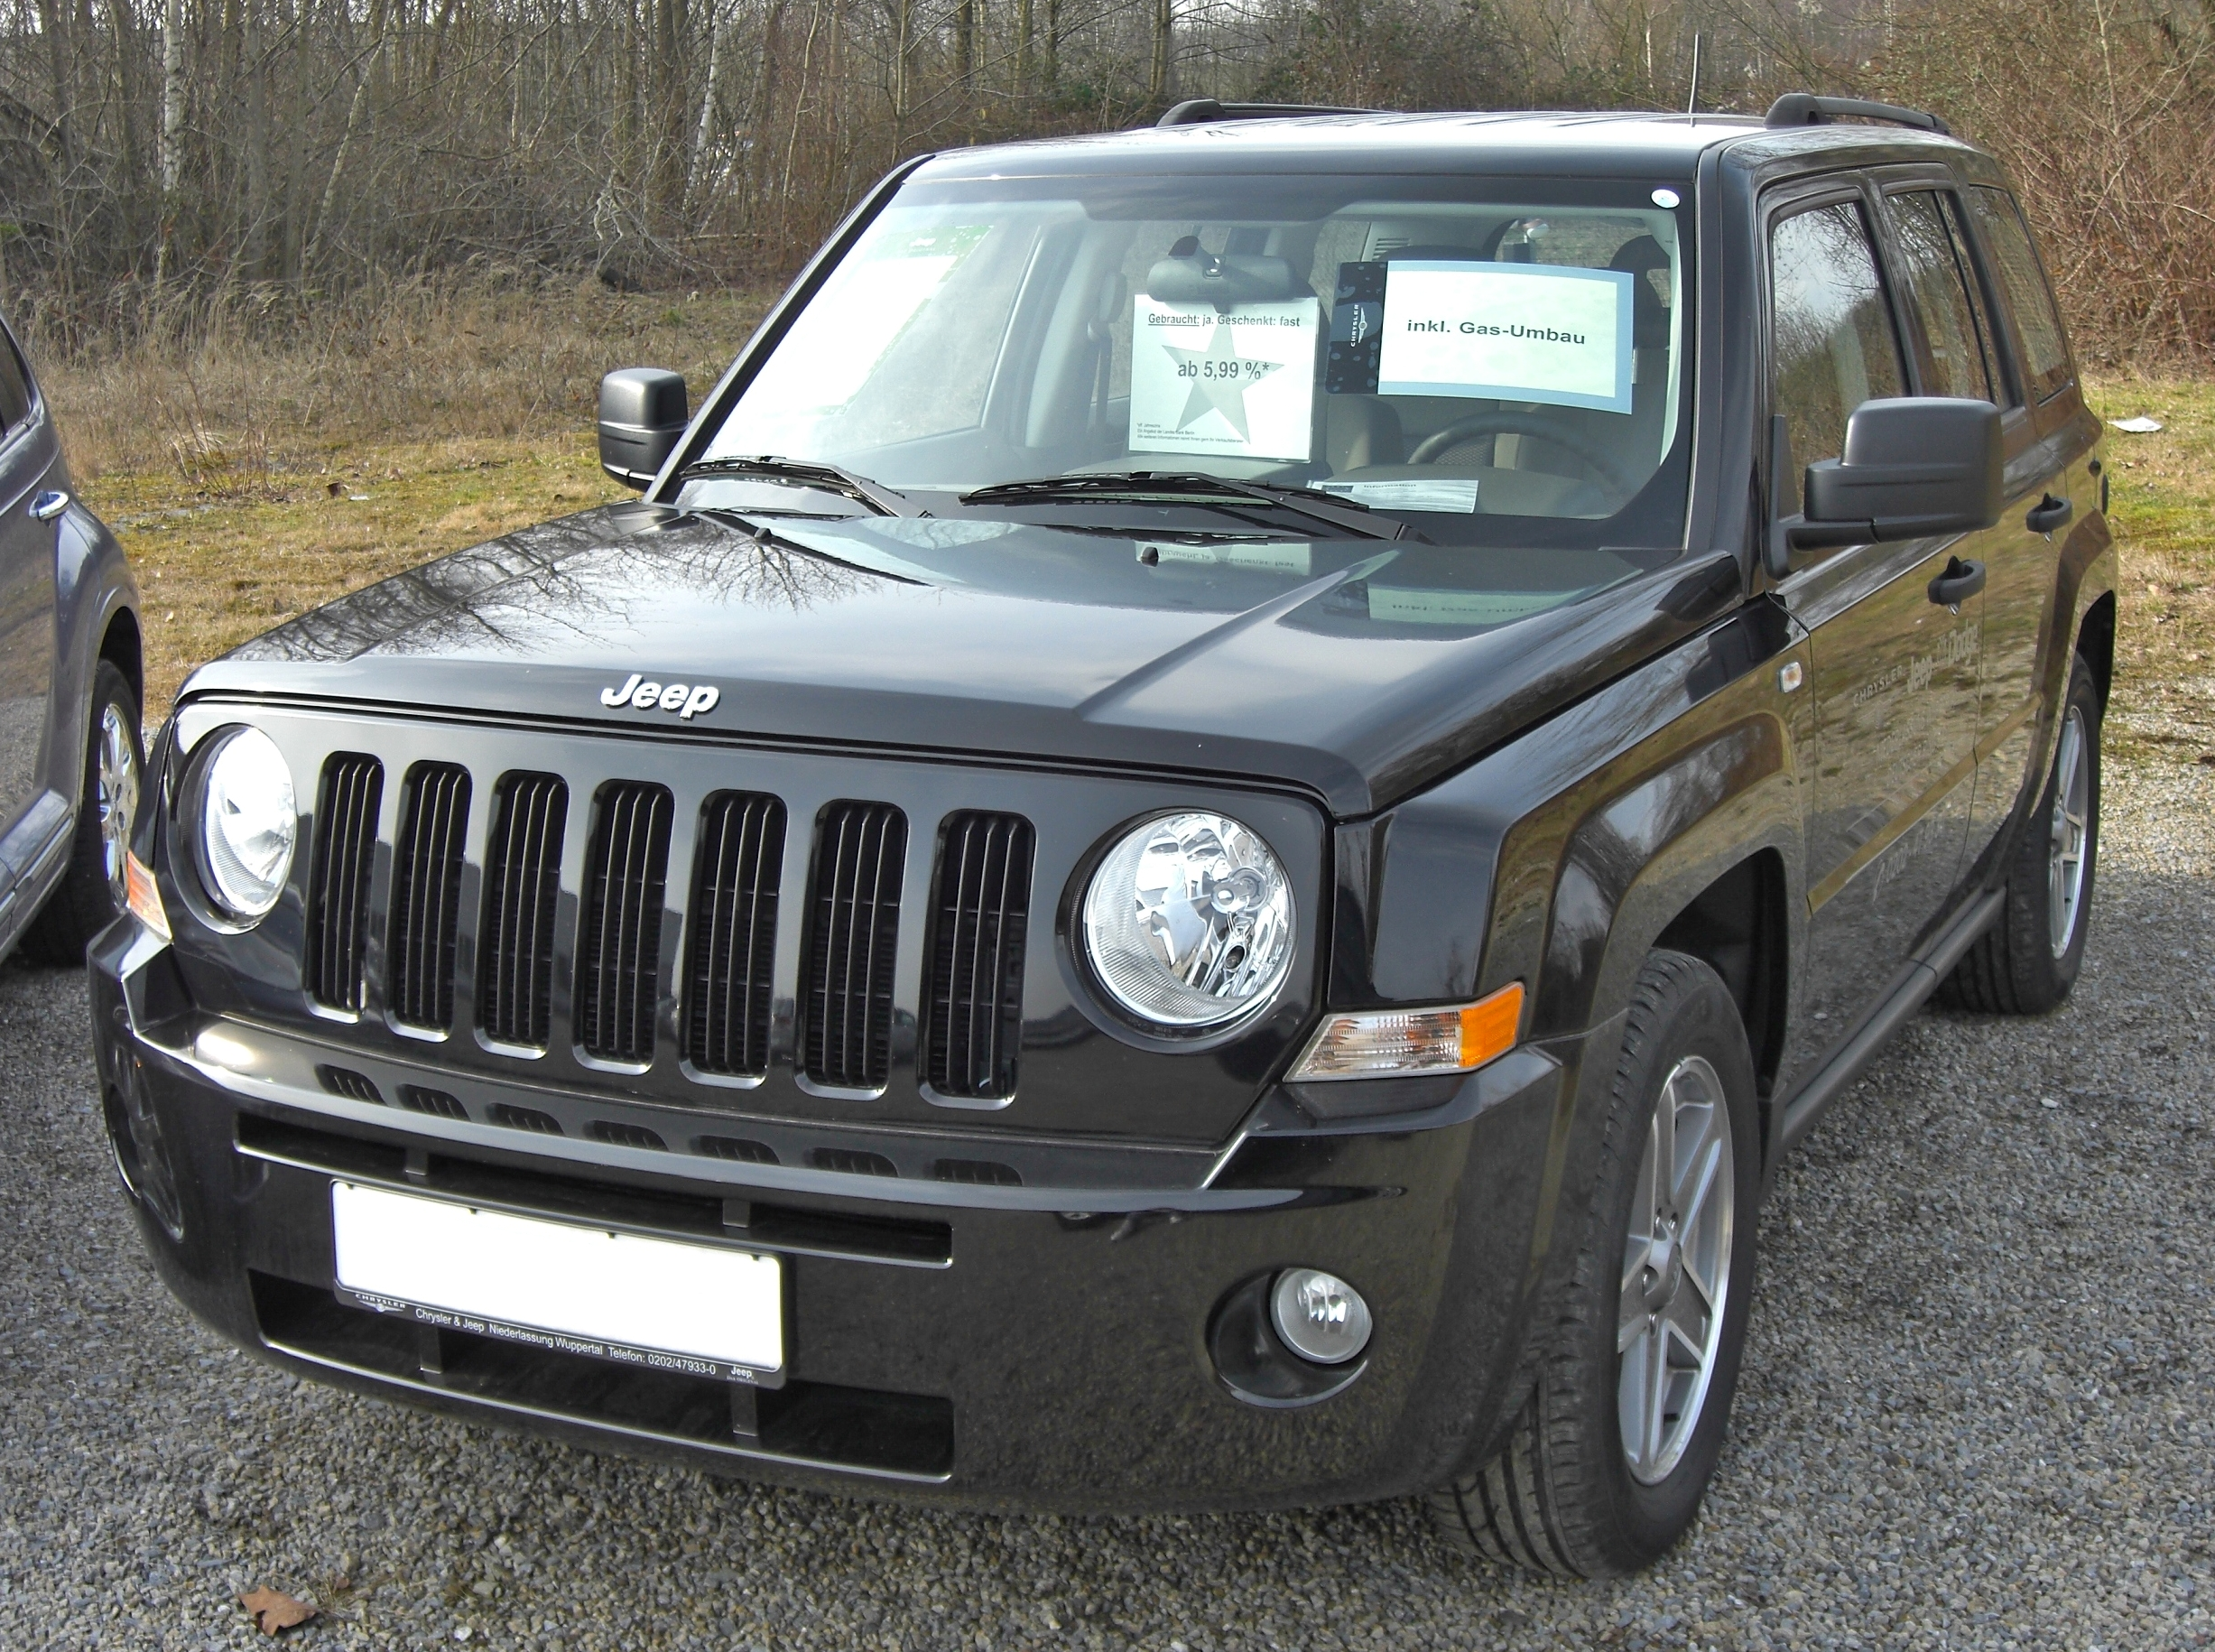 Jeep Custom Headlights File:Jeep Patriot 20090301 front.jpg - Wikimedia Commons